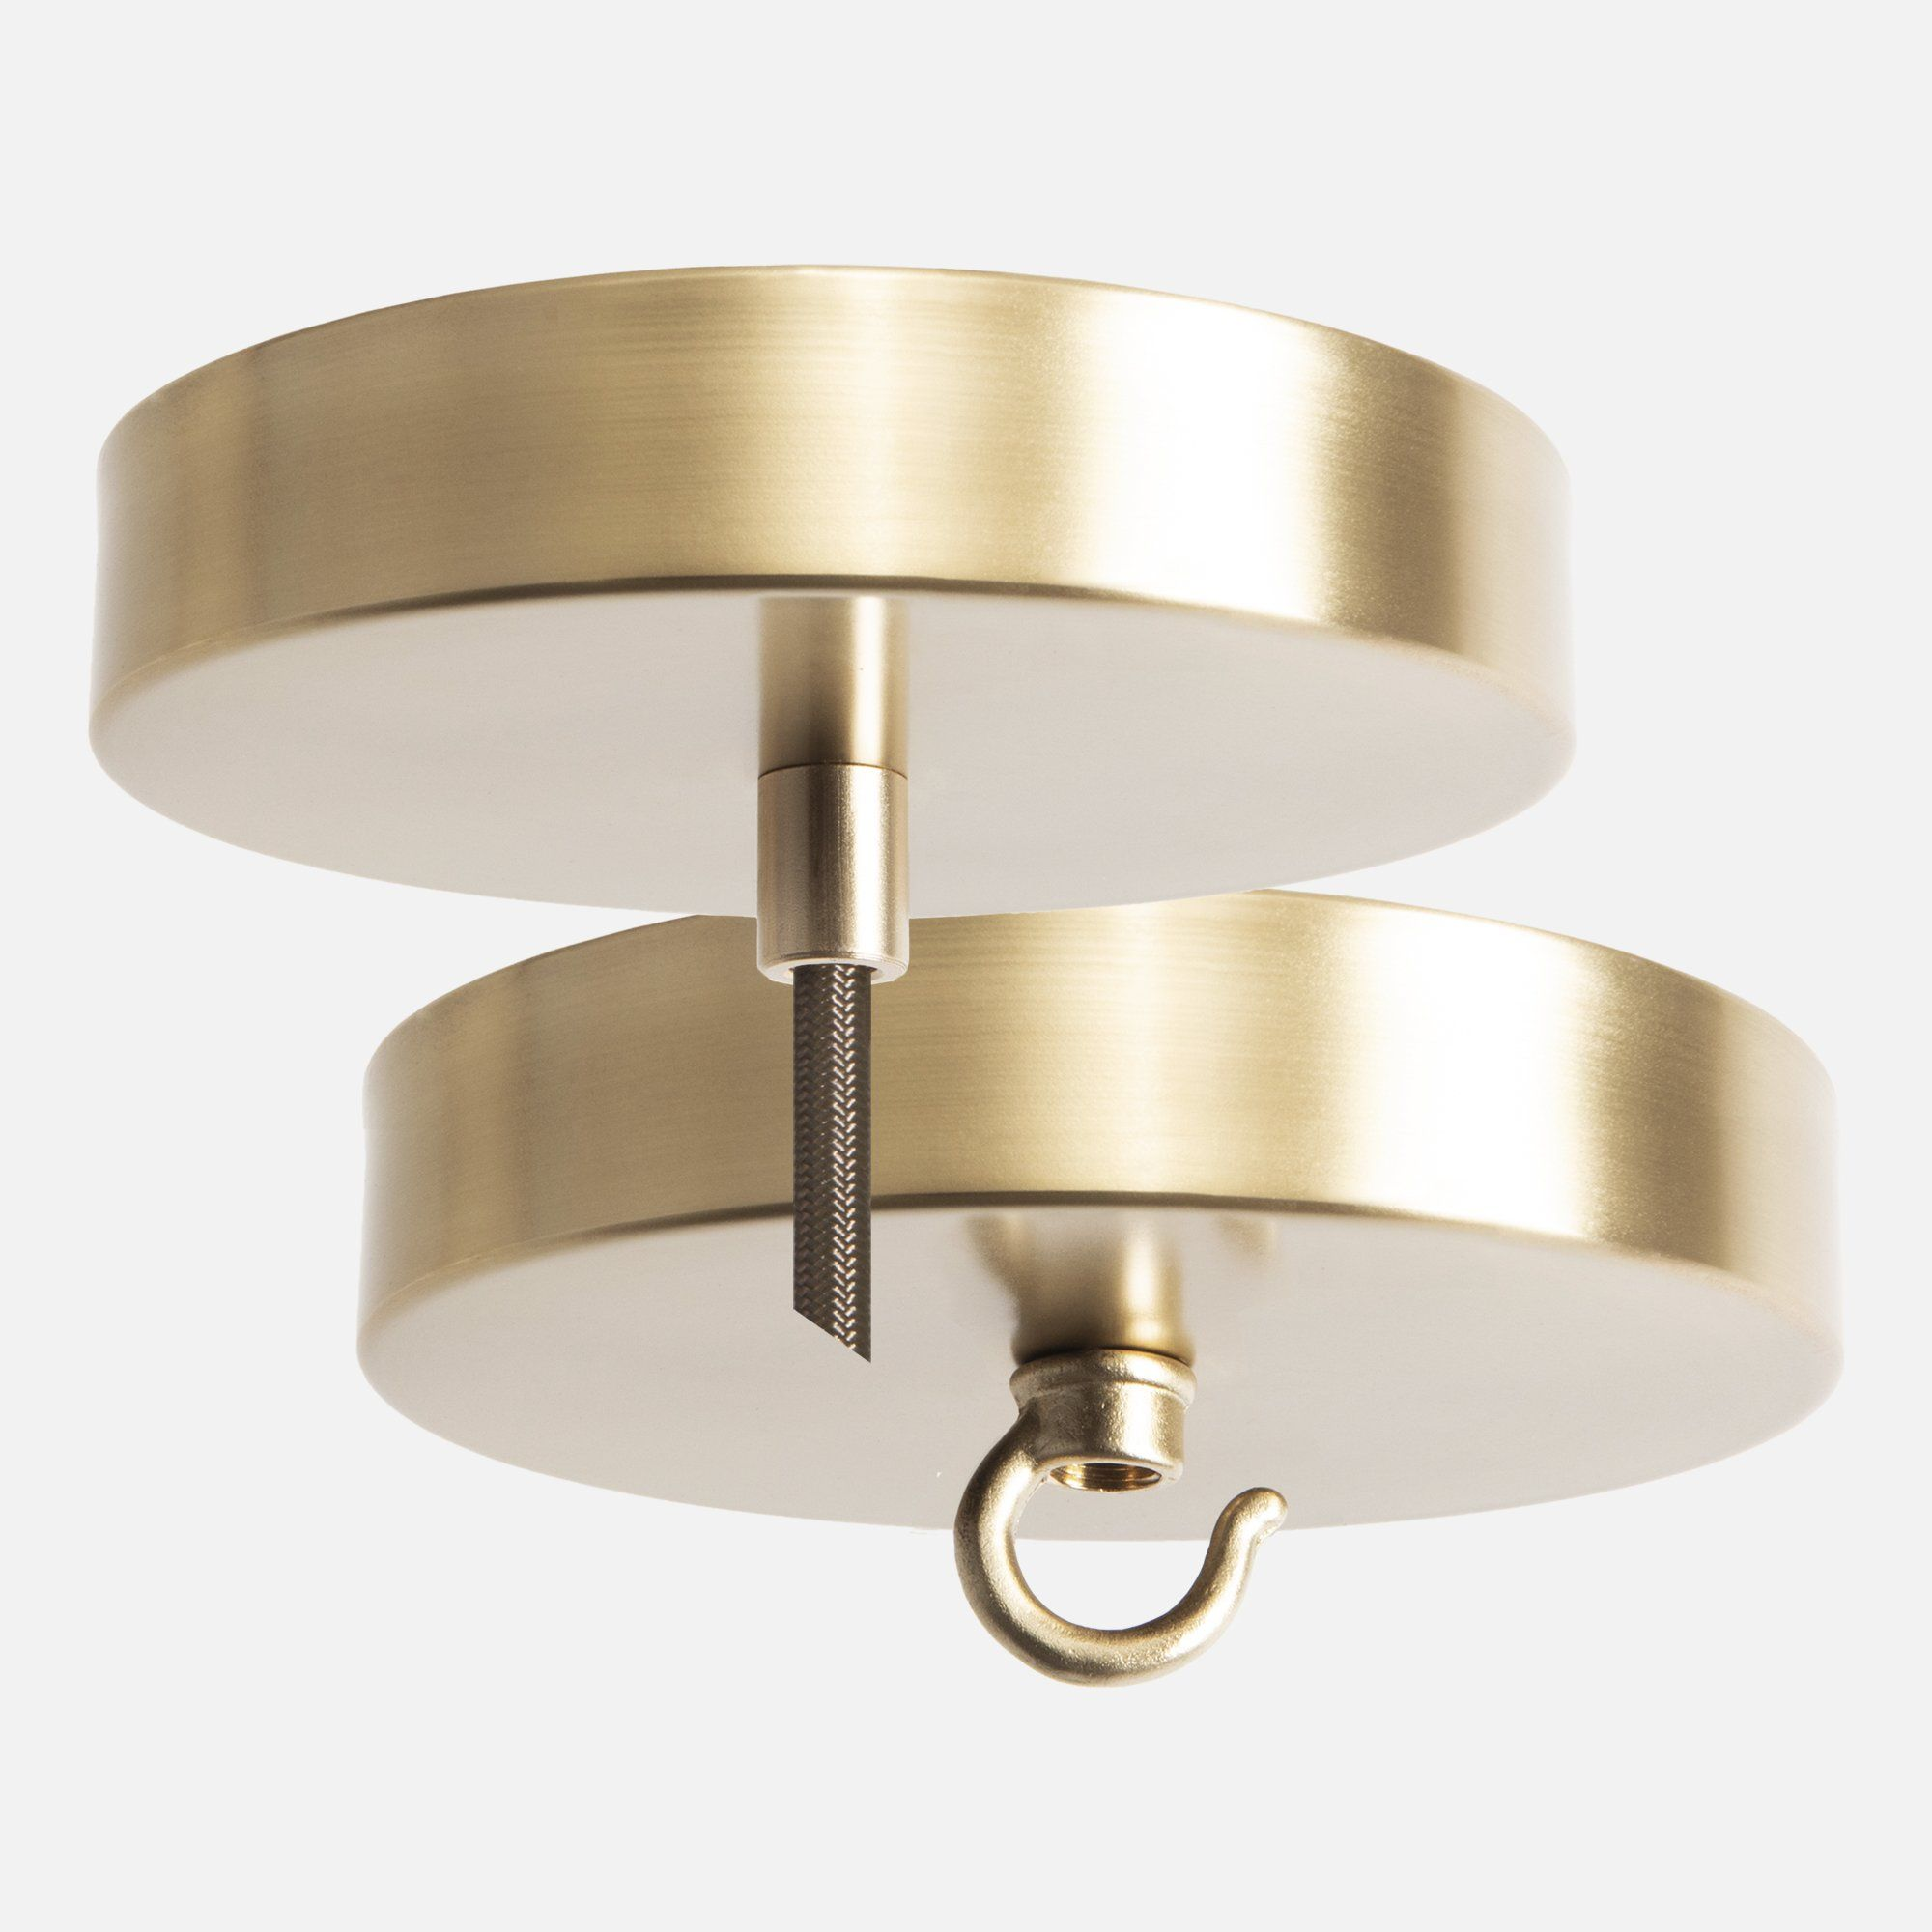 Ceiling Canopy Kit 5 6 8 10 Lighting Ceiling Fixtures